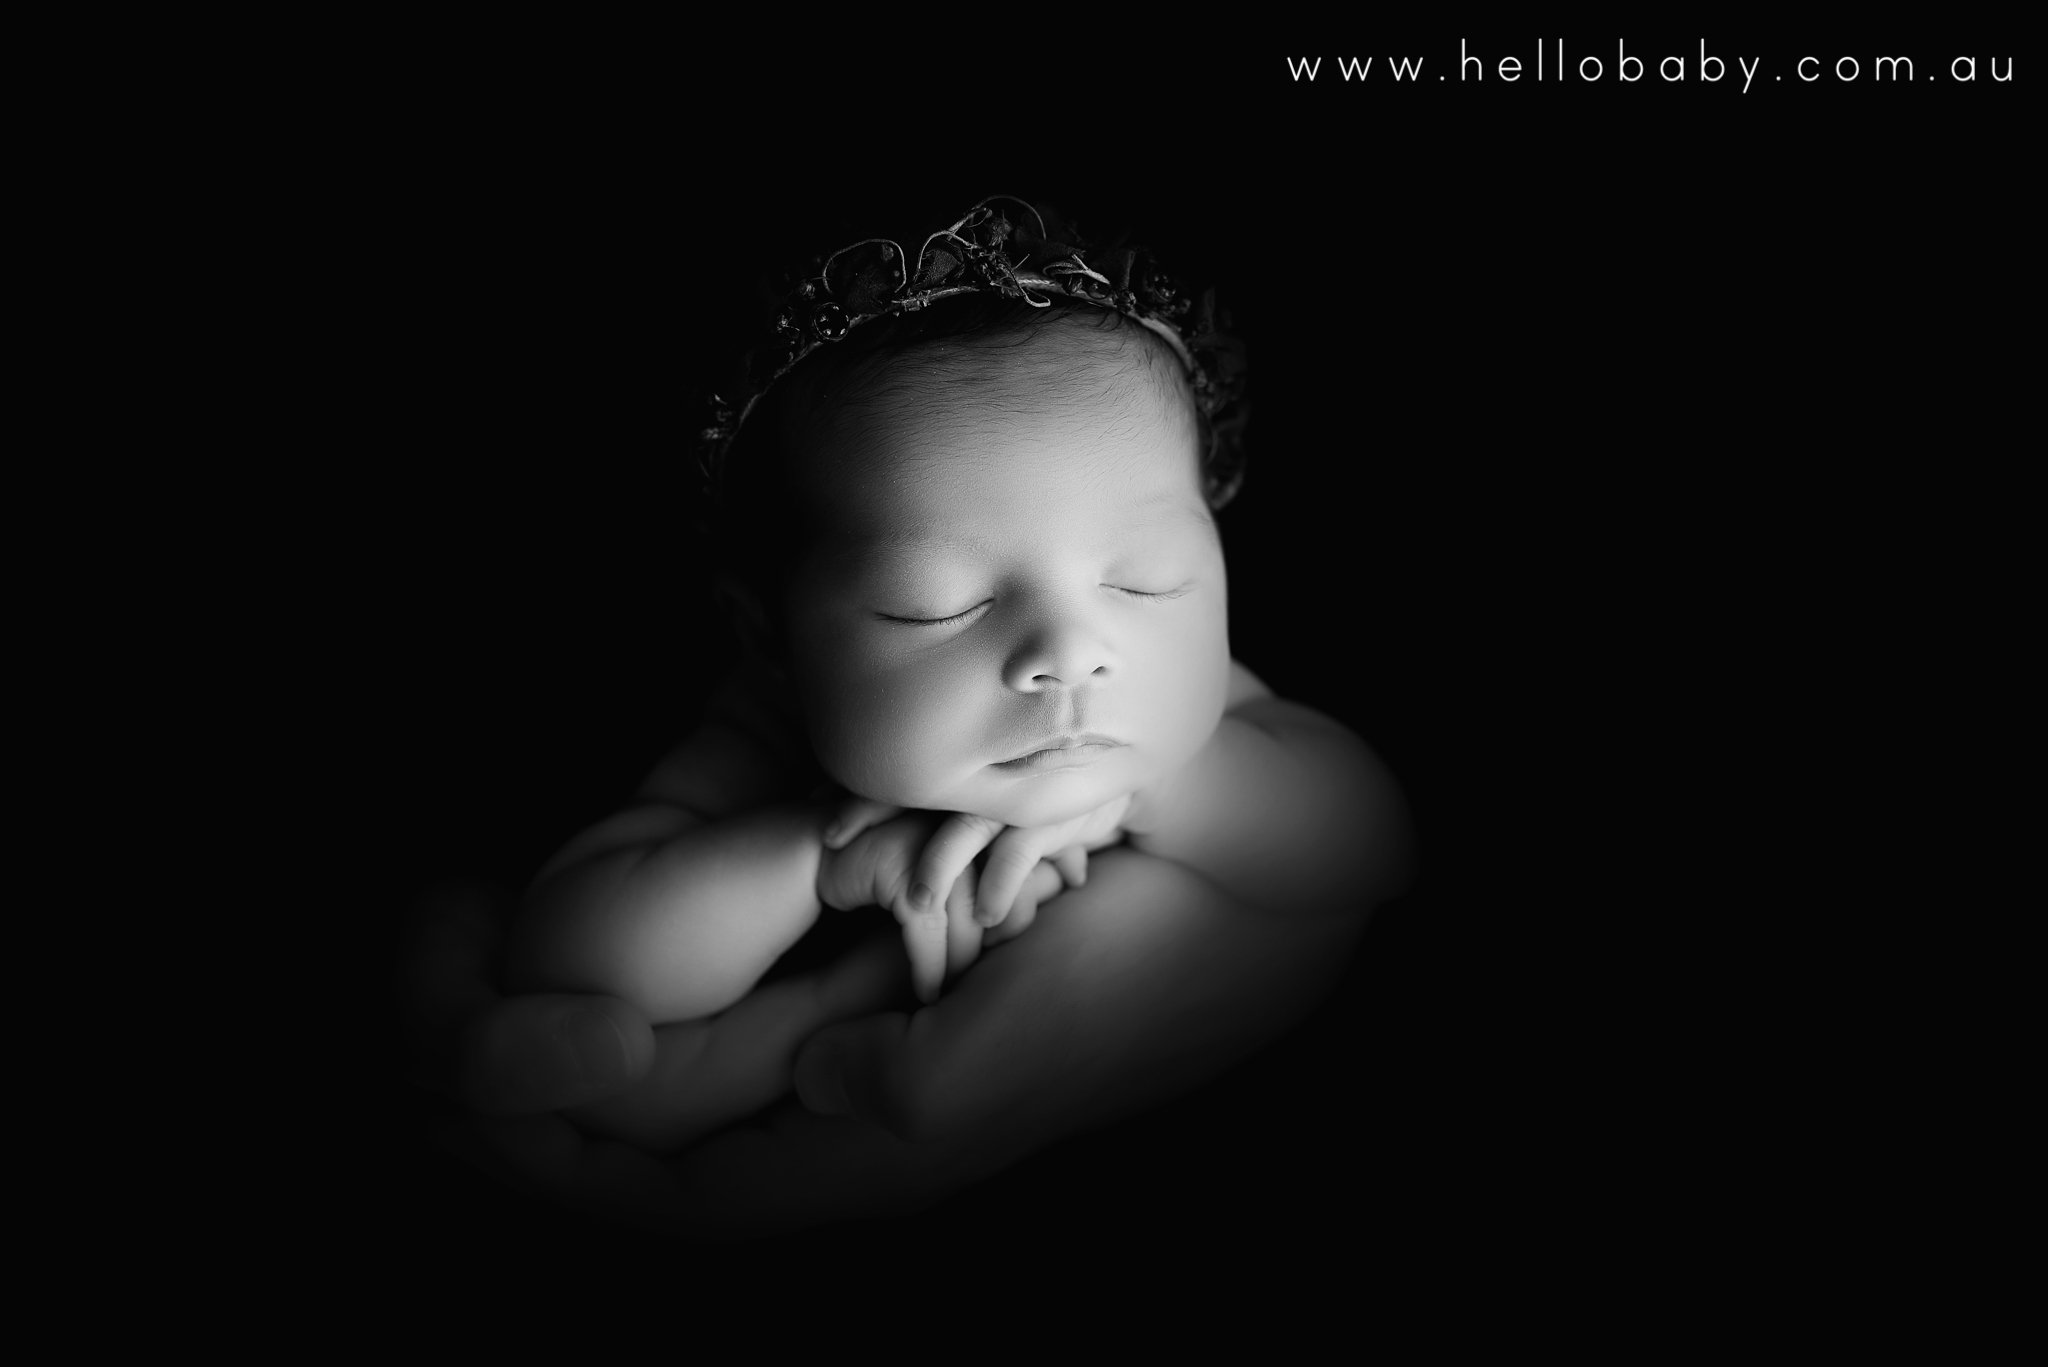 A newborn baby girl sleeping resting her chin on her hands held in her father's safe hands